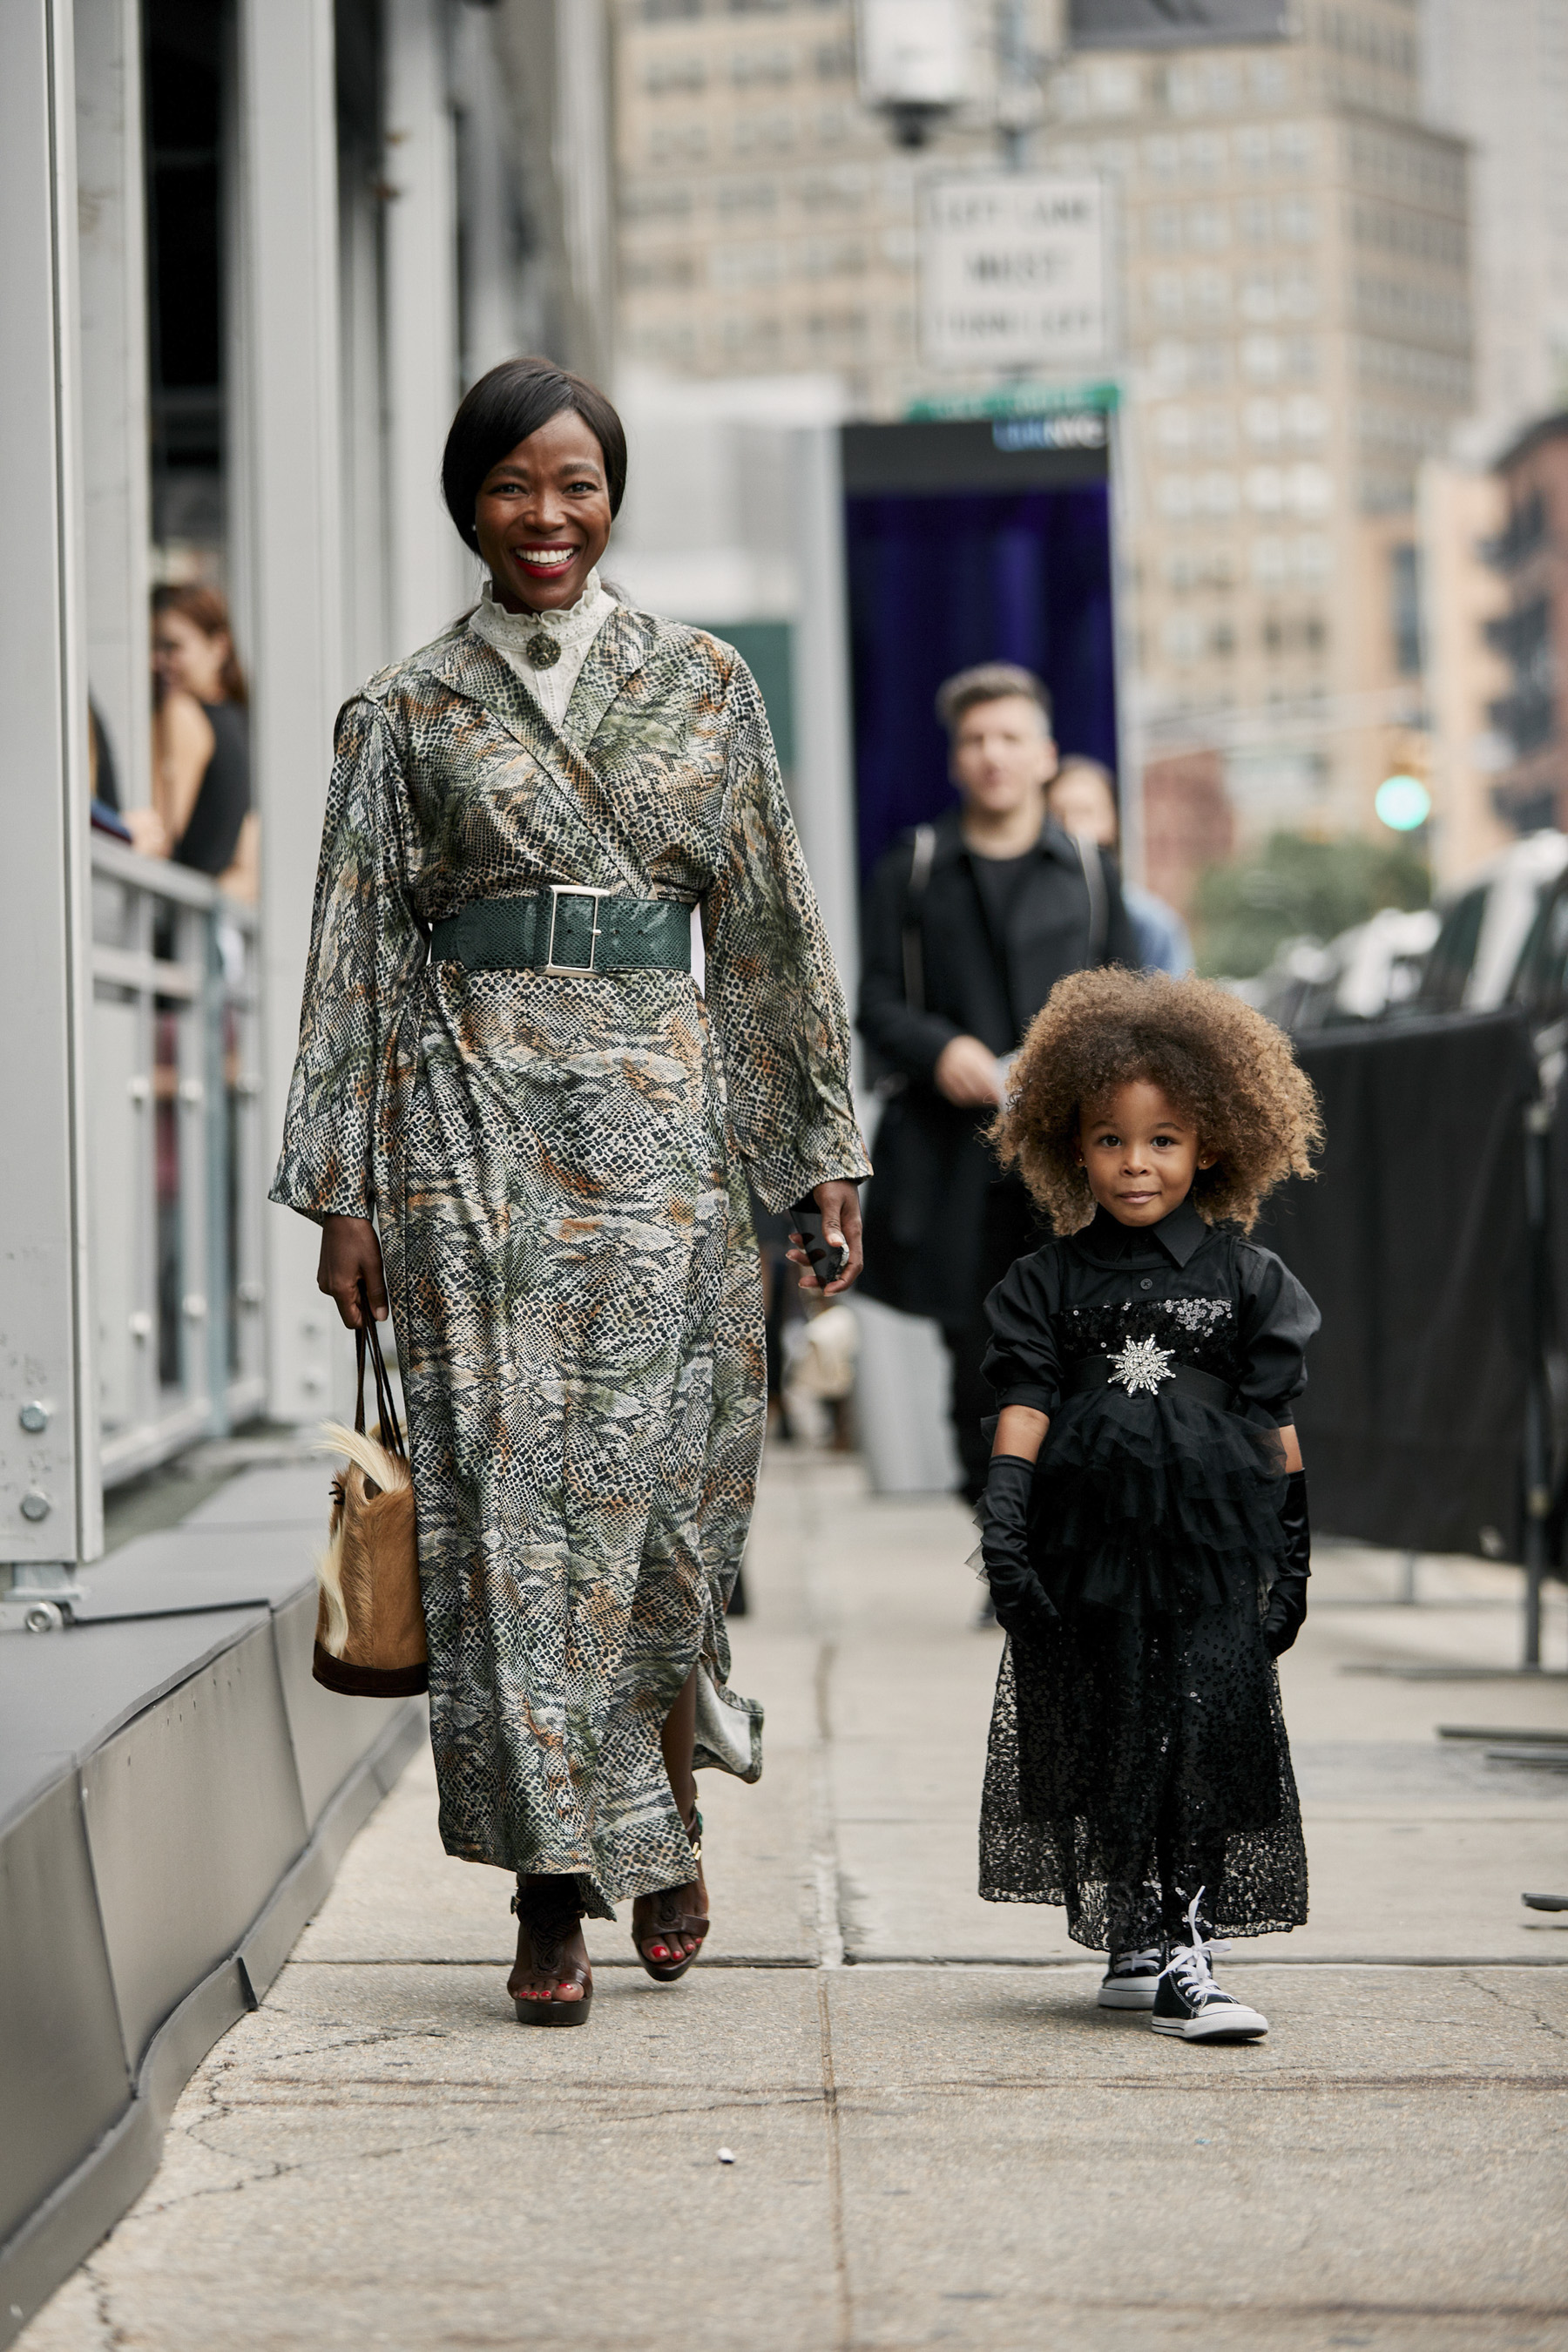 Best Street Style Looks of NYFW Spring 2019